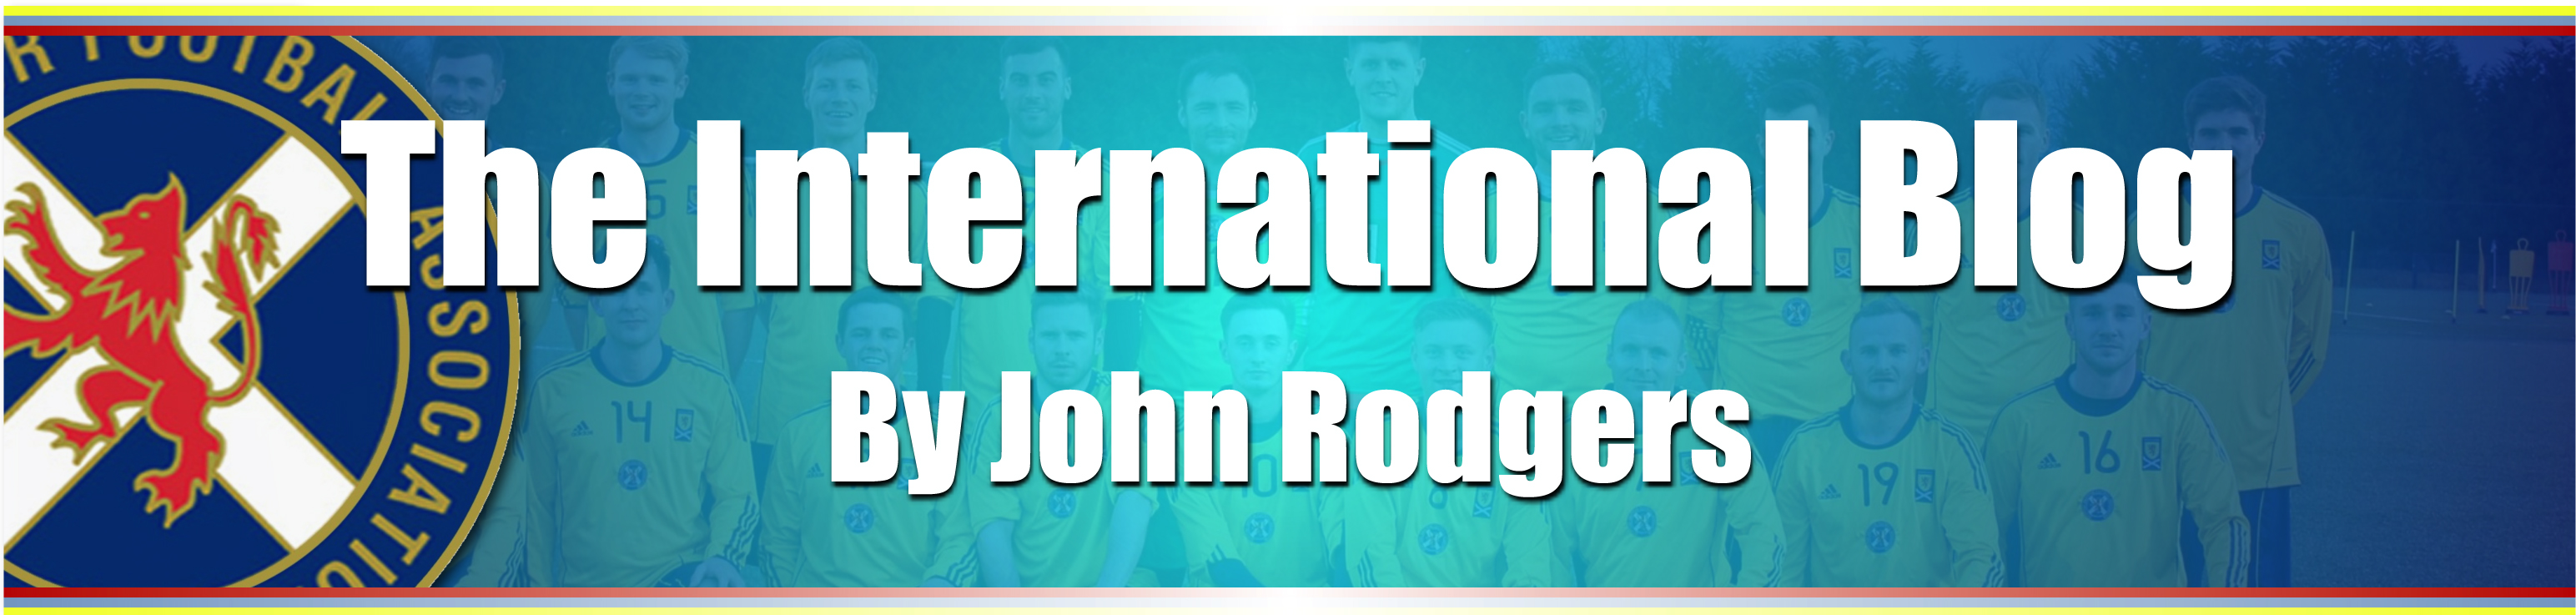 <a href='/newsdetail/ID/571'>The International Blog Latest by John Rodgers</a>